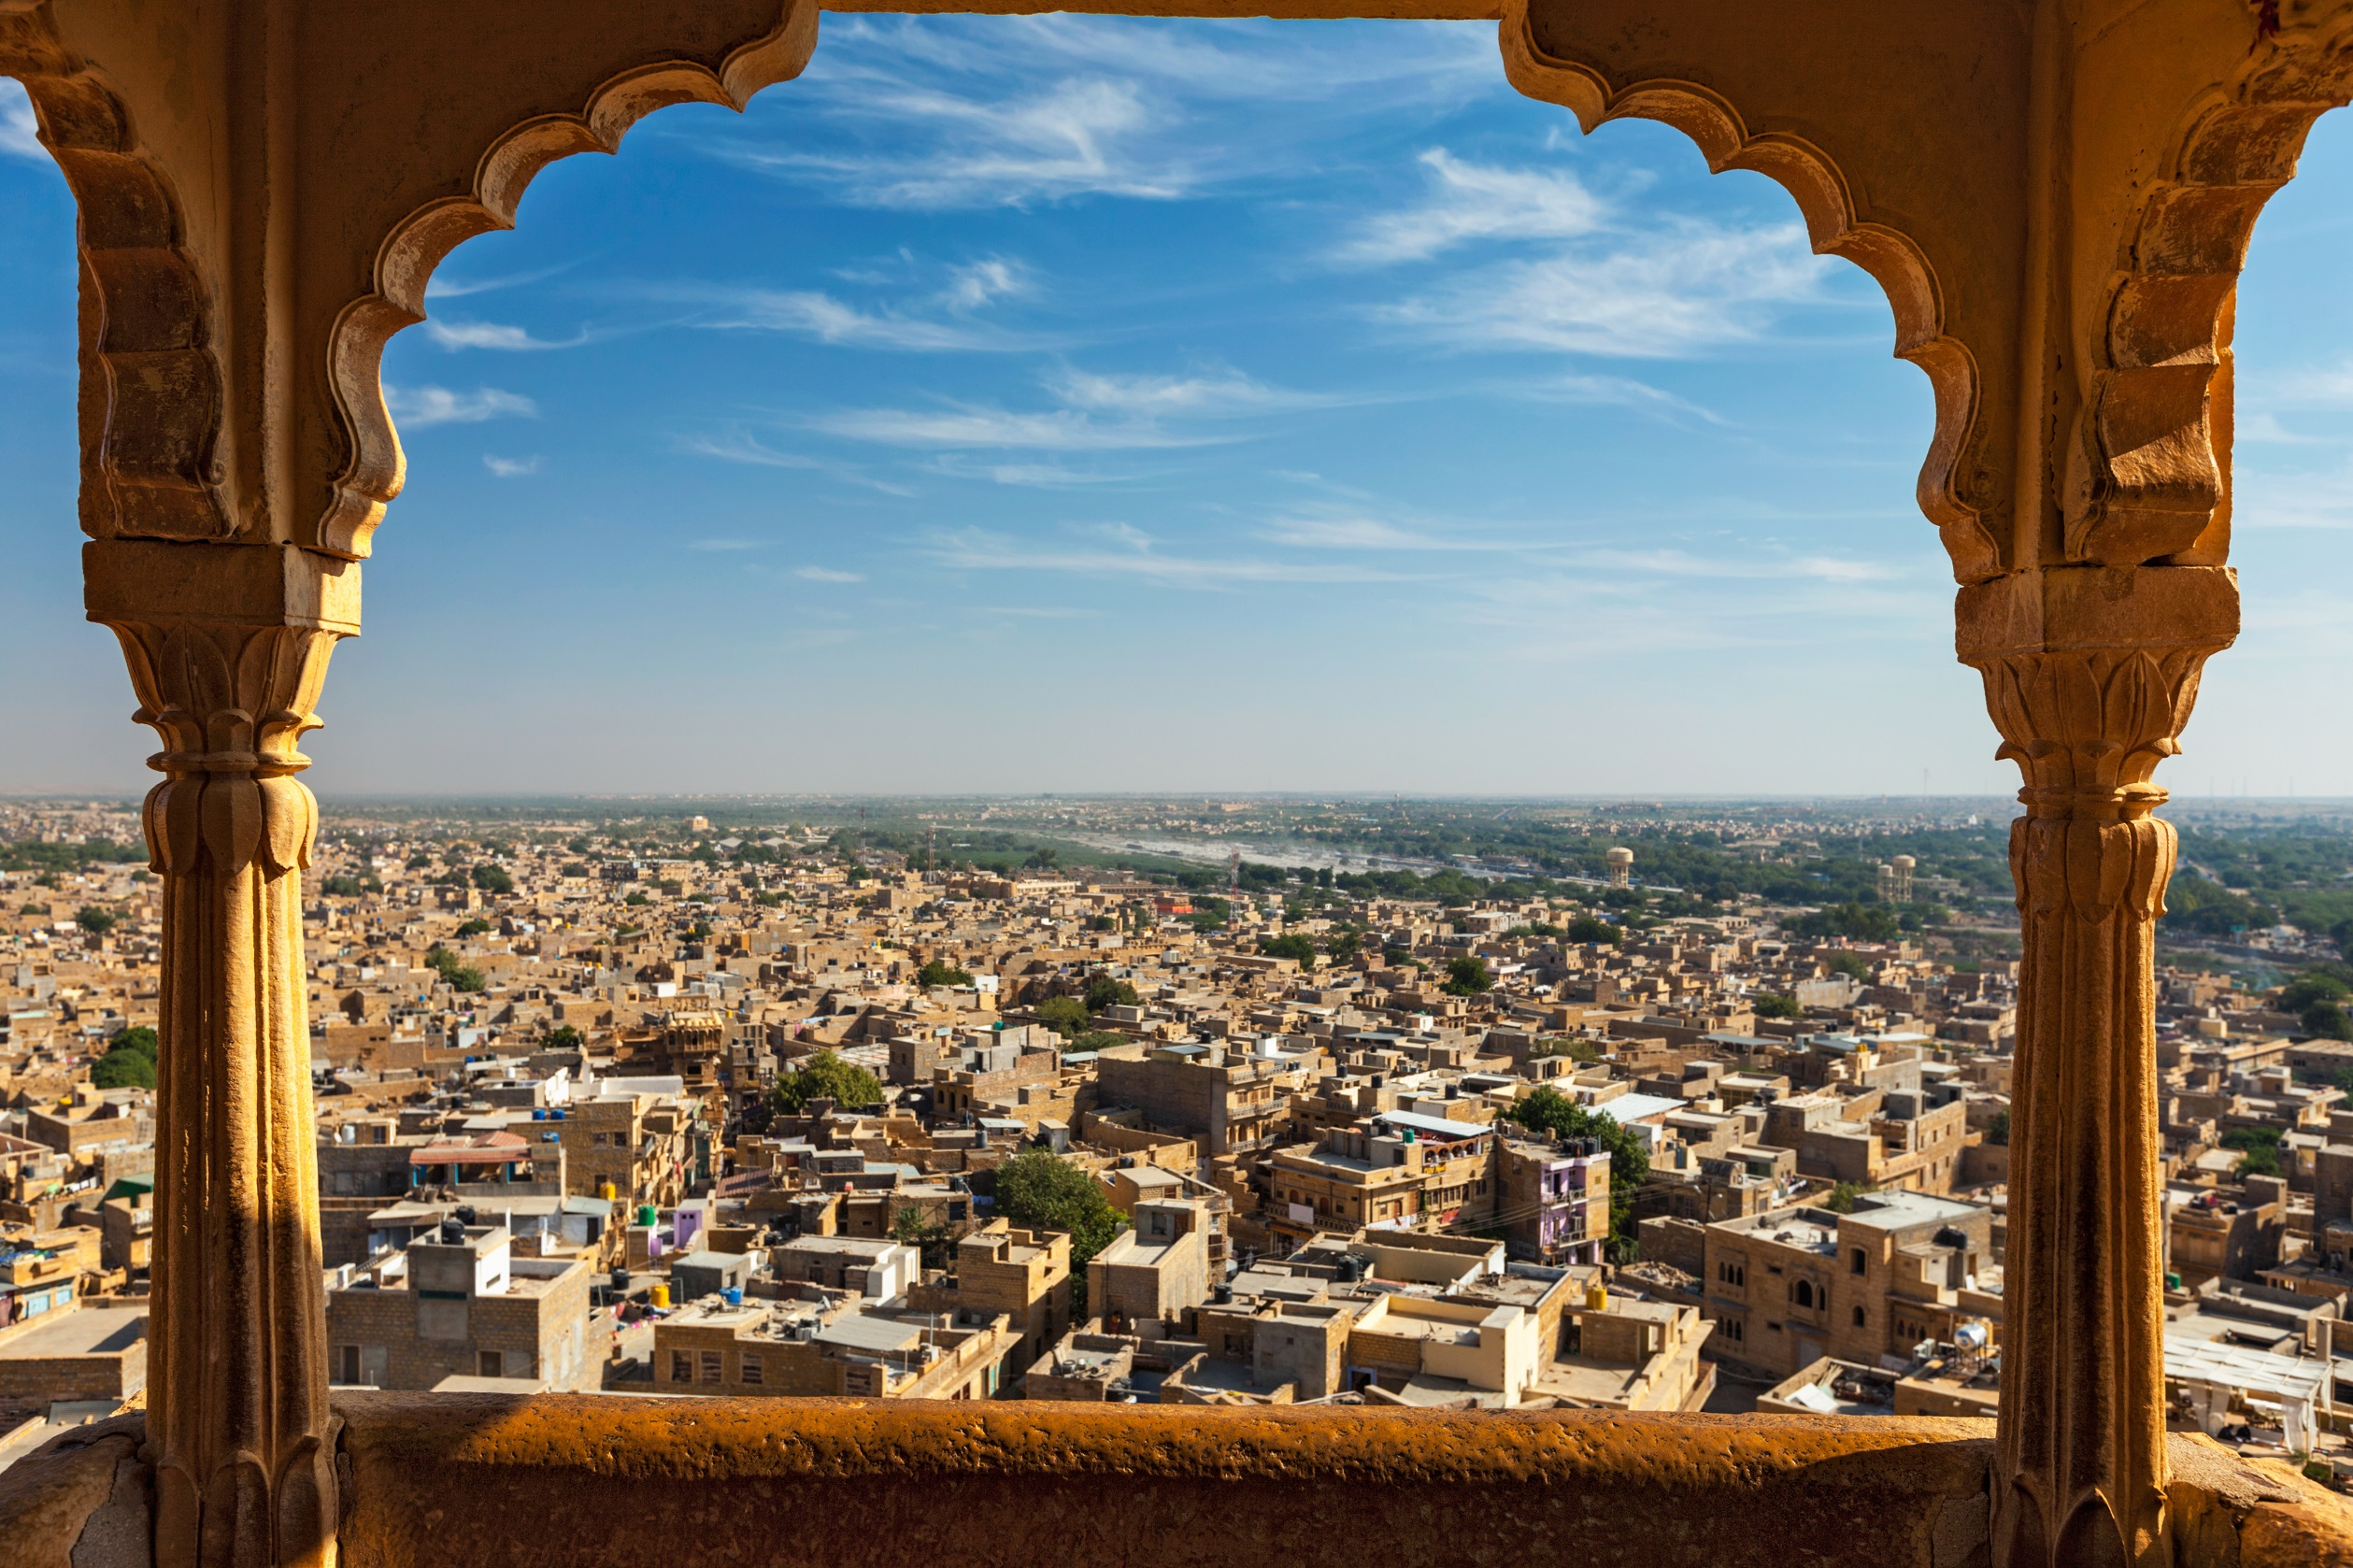 jaisalmer-city-from-jaisalmer-fort-through-arch